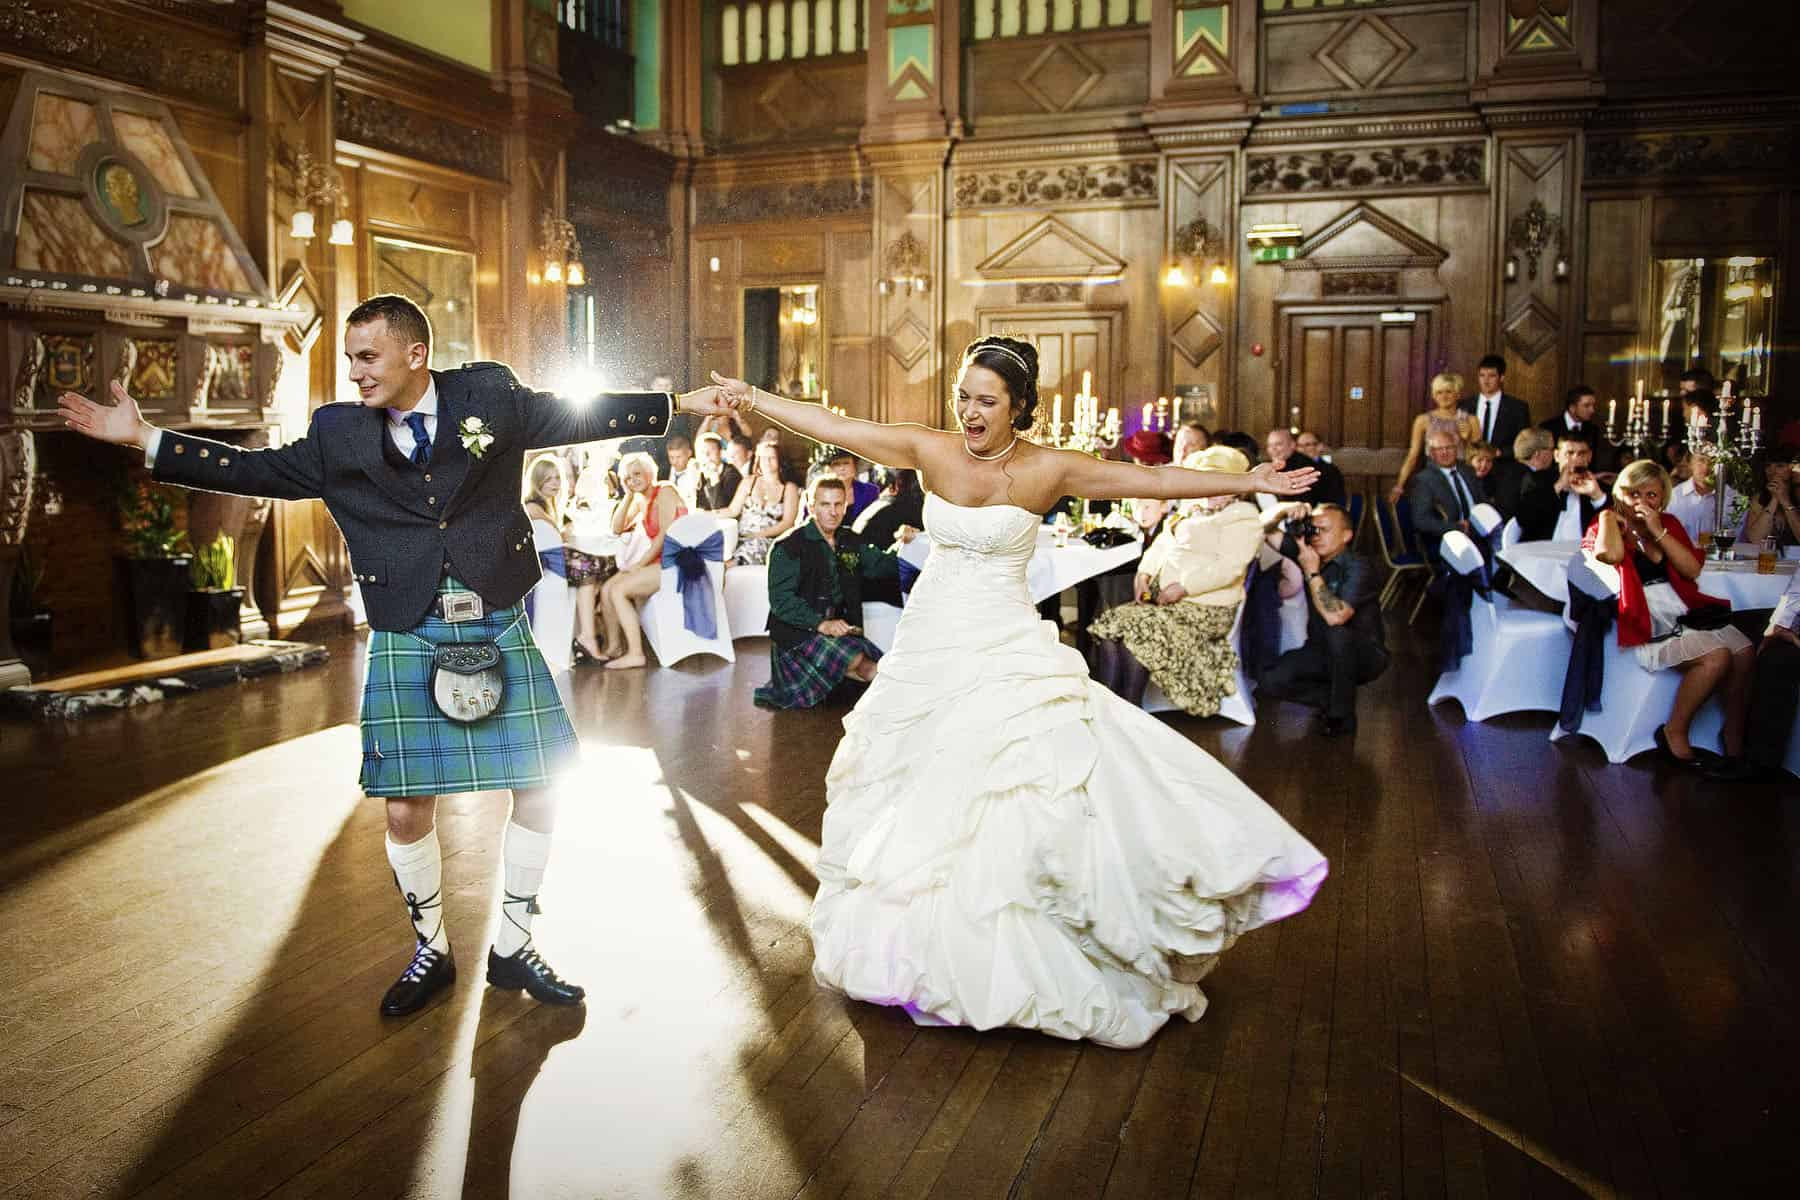 Beautiful and creative wedding photography in Scotland by Glasgow Wedding Photographer BK Photography